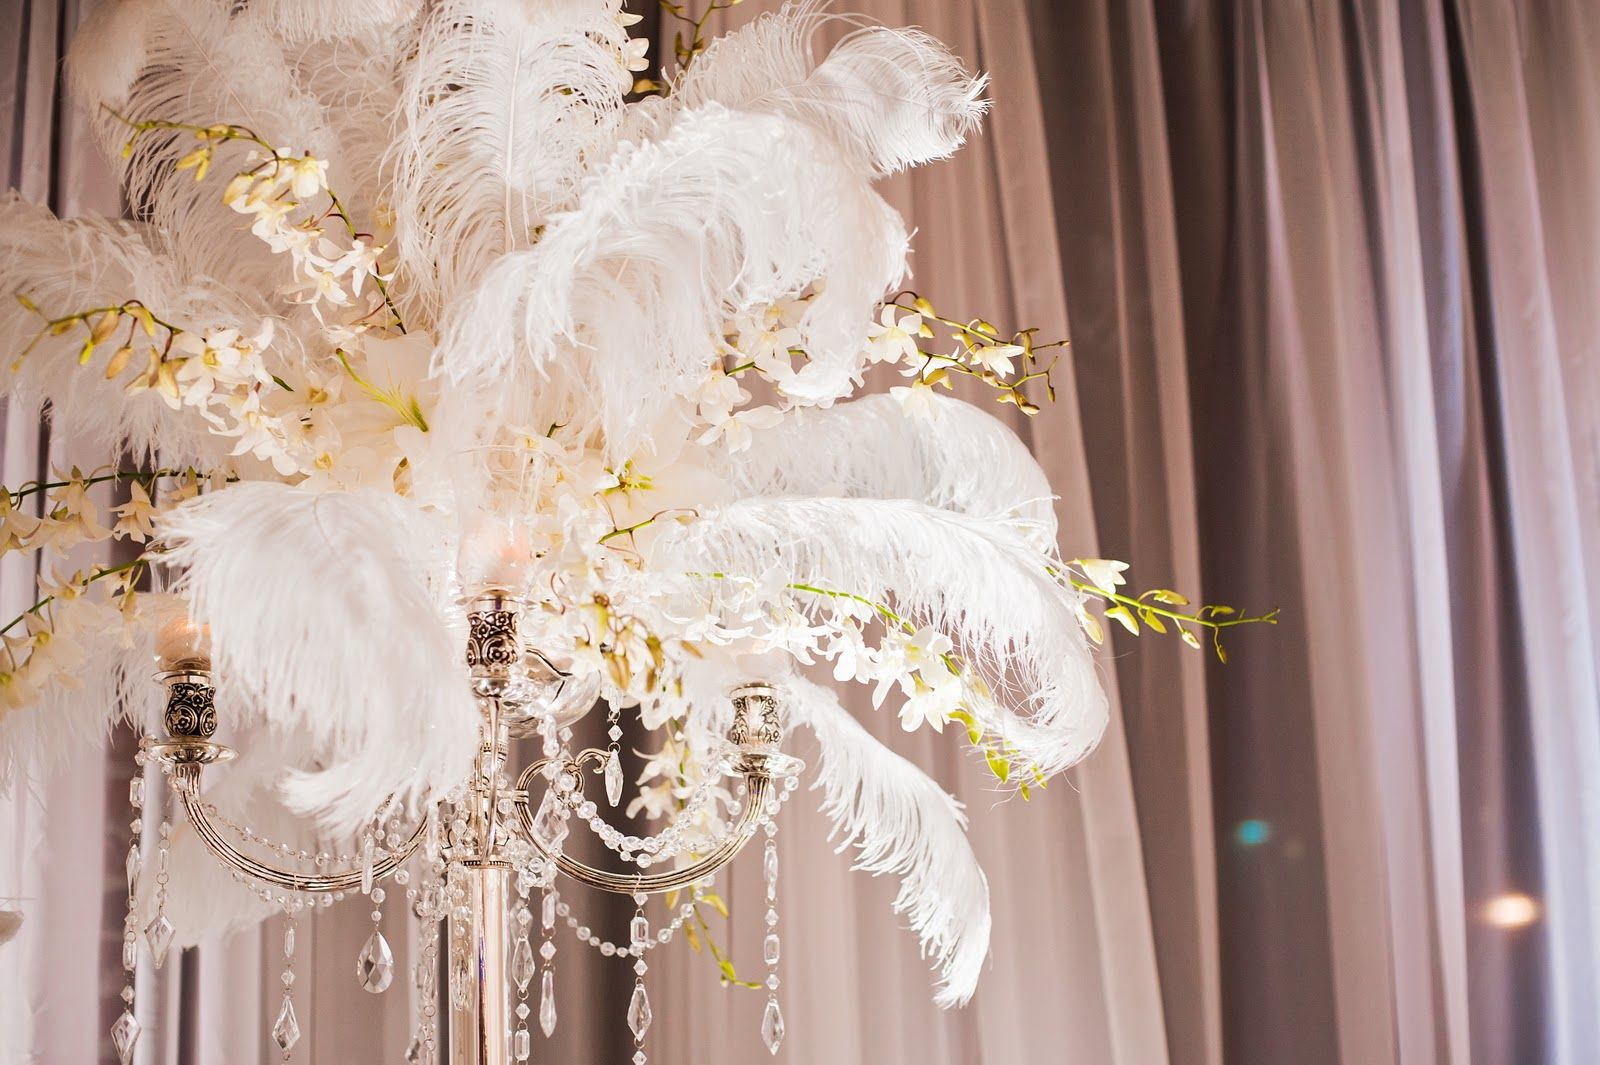 Pictures of ostrich feather decorations in weddings buy for Where can i buy wedding decorations